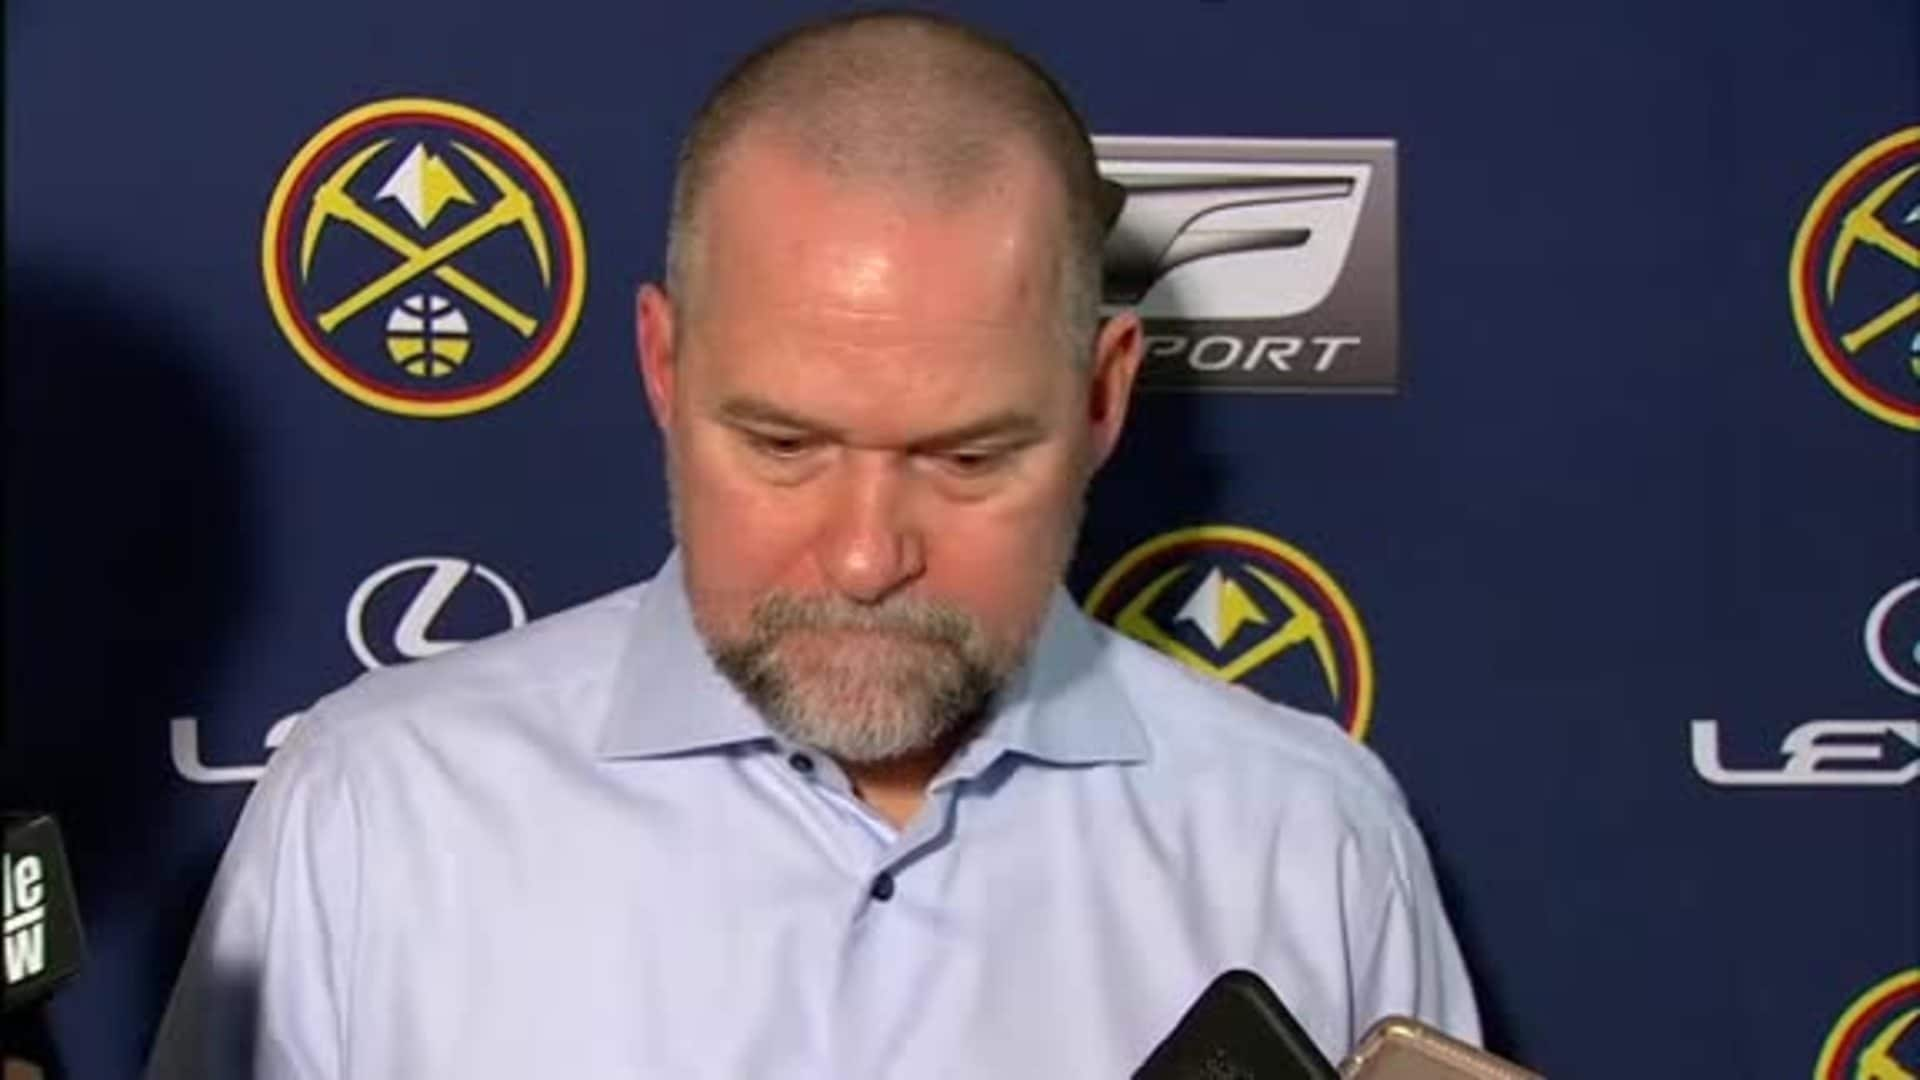 Nuggets vs. Kings: Michael Malone postgame interview